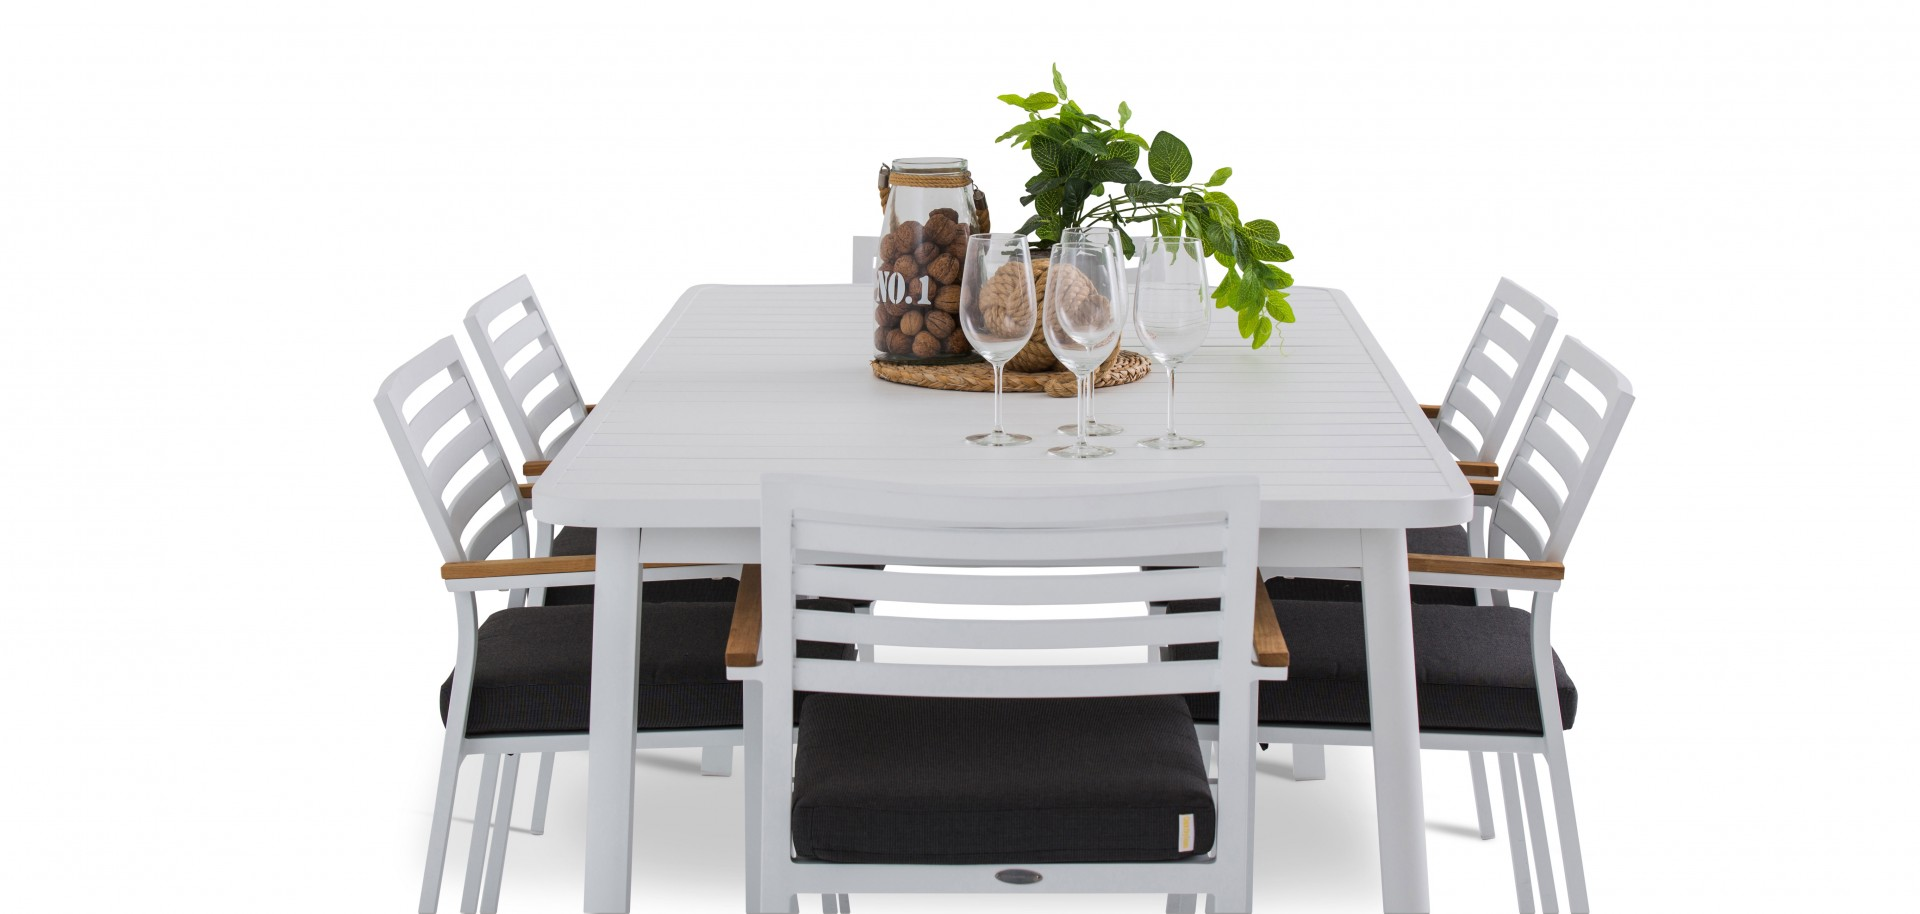 Athens Outdoor Chairs with White Table